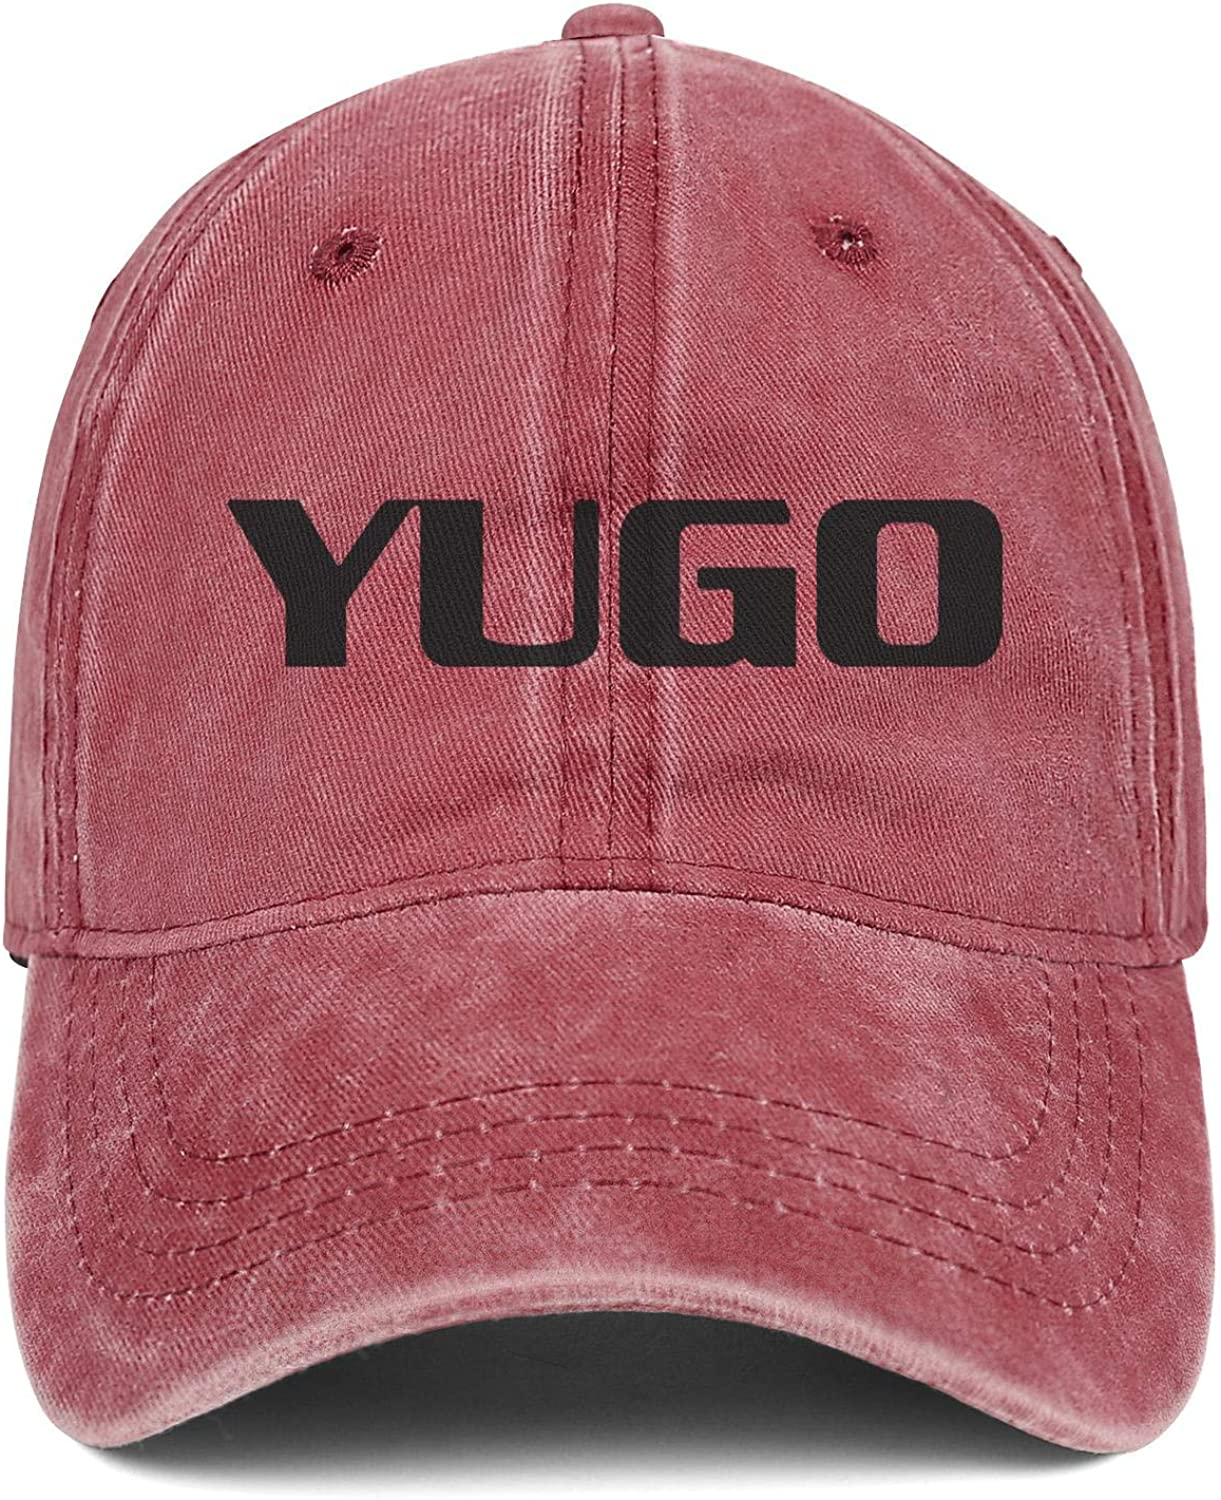 Men Women Hat Yugo-Logo Snapback Hats Custom Denim Cap Casual Caps